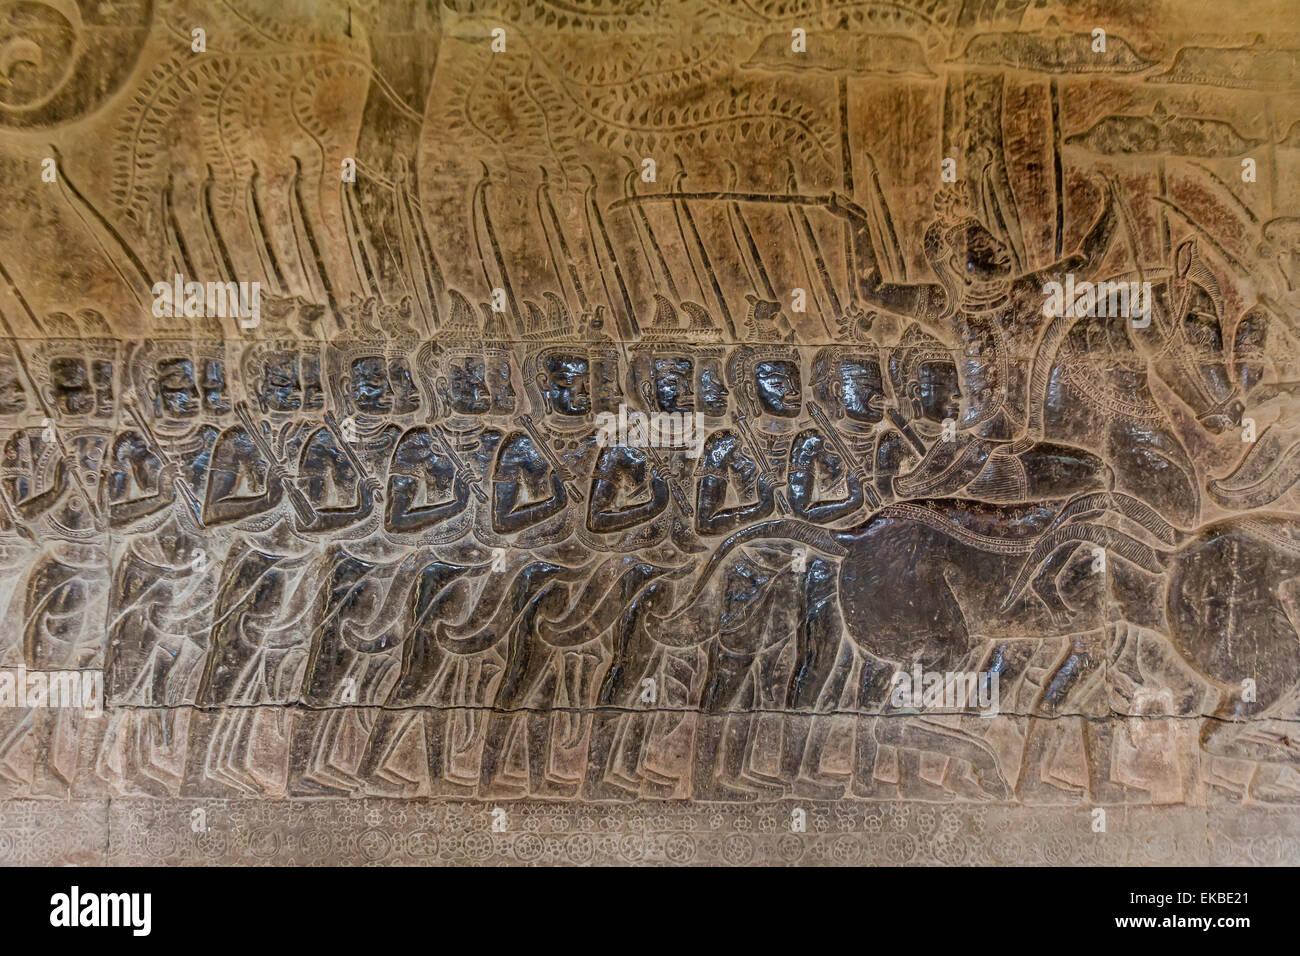 Bas relief angkor wat siem reap cambodia stock photos